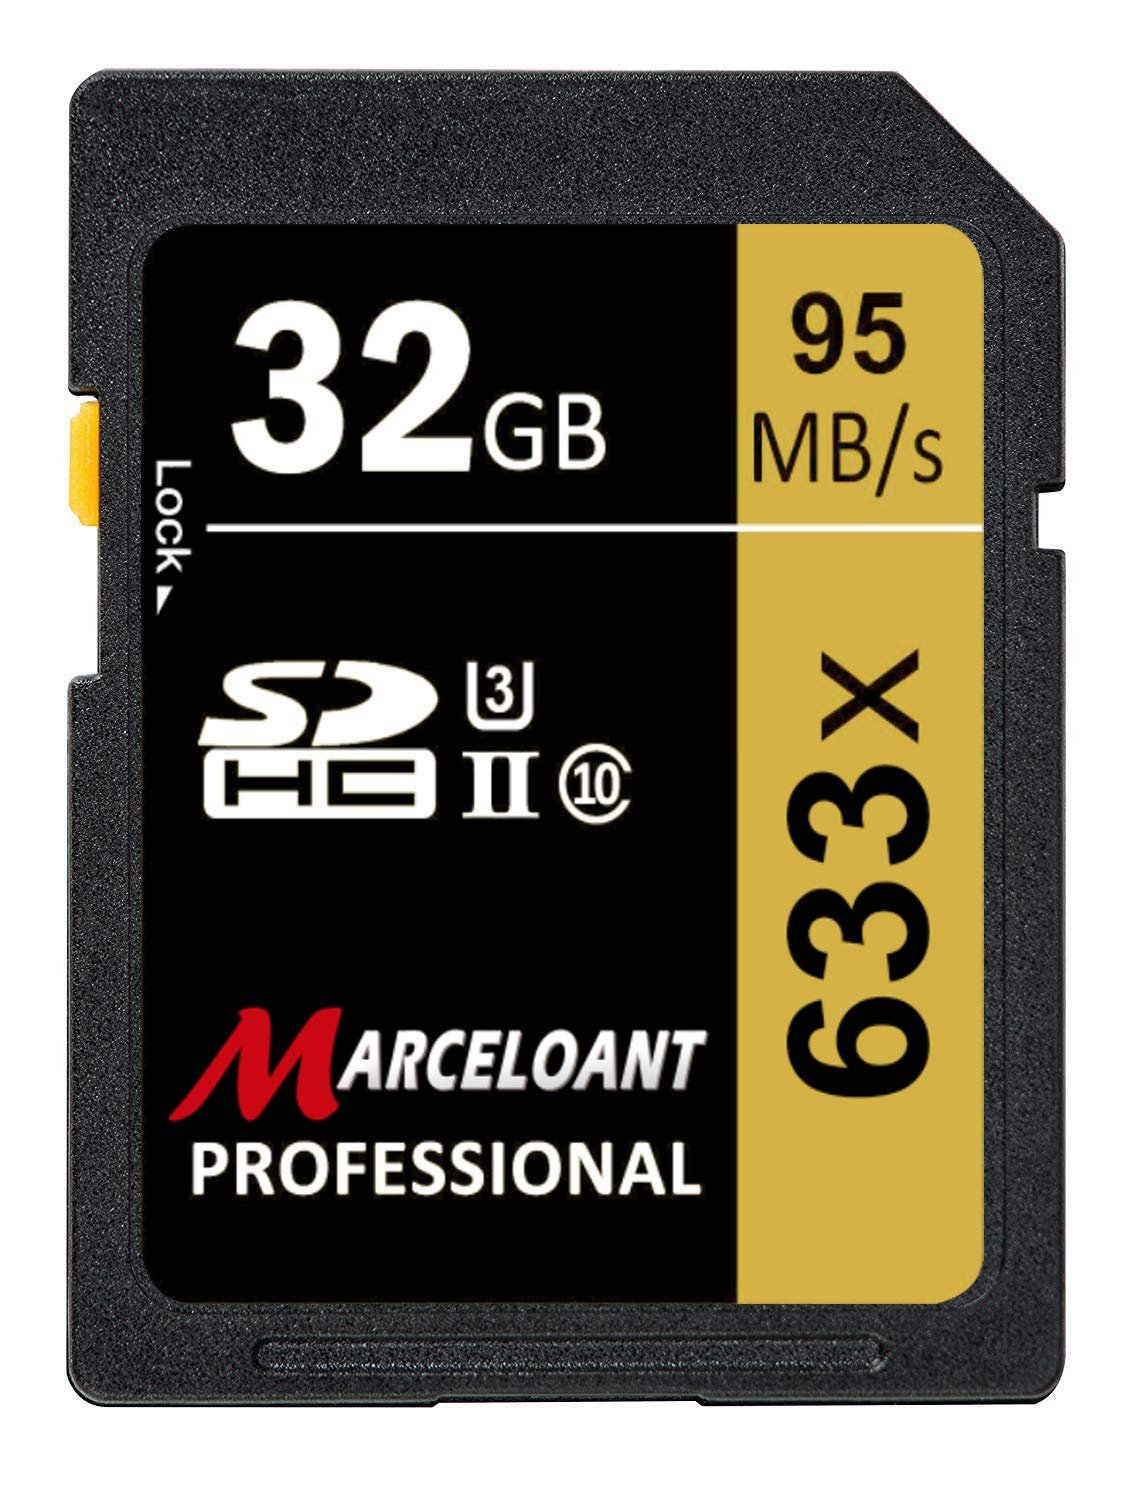 32GB SD Card, Marceloant Professional 633 x Class 10 SDHC UHS-II U3 SD Card Compatible Computer Cameras and Camcorders, SD Memory Card Up to 95MB/s, Yellow/Black (32GB) by Marceloant